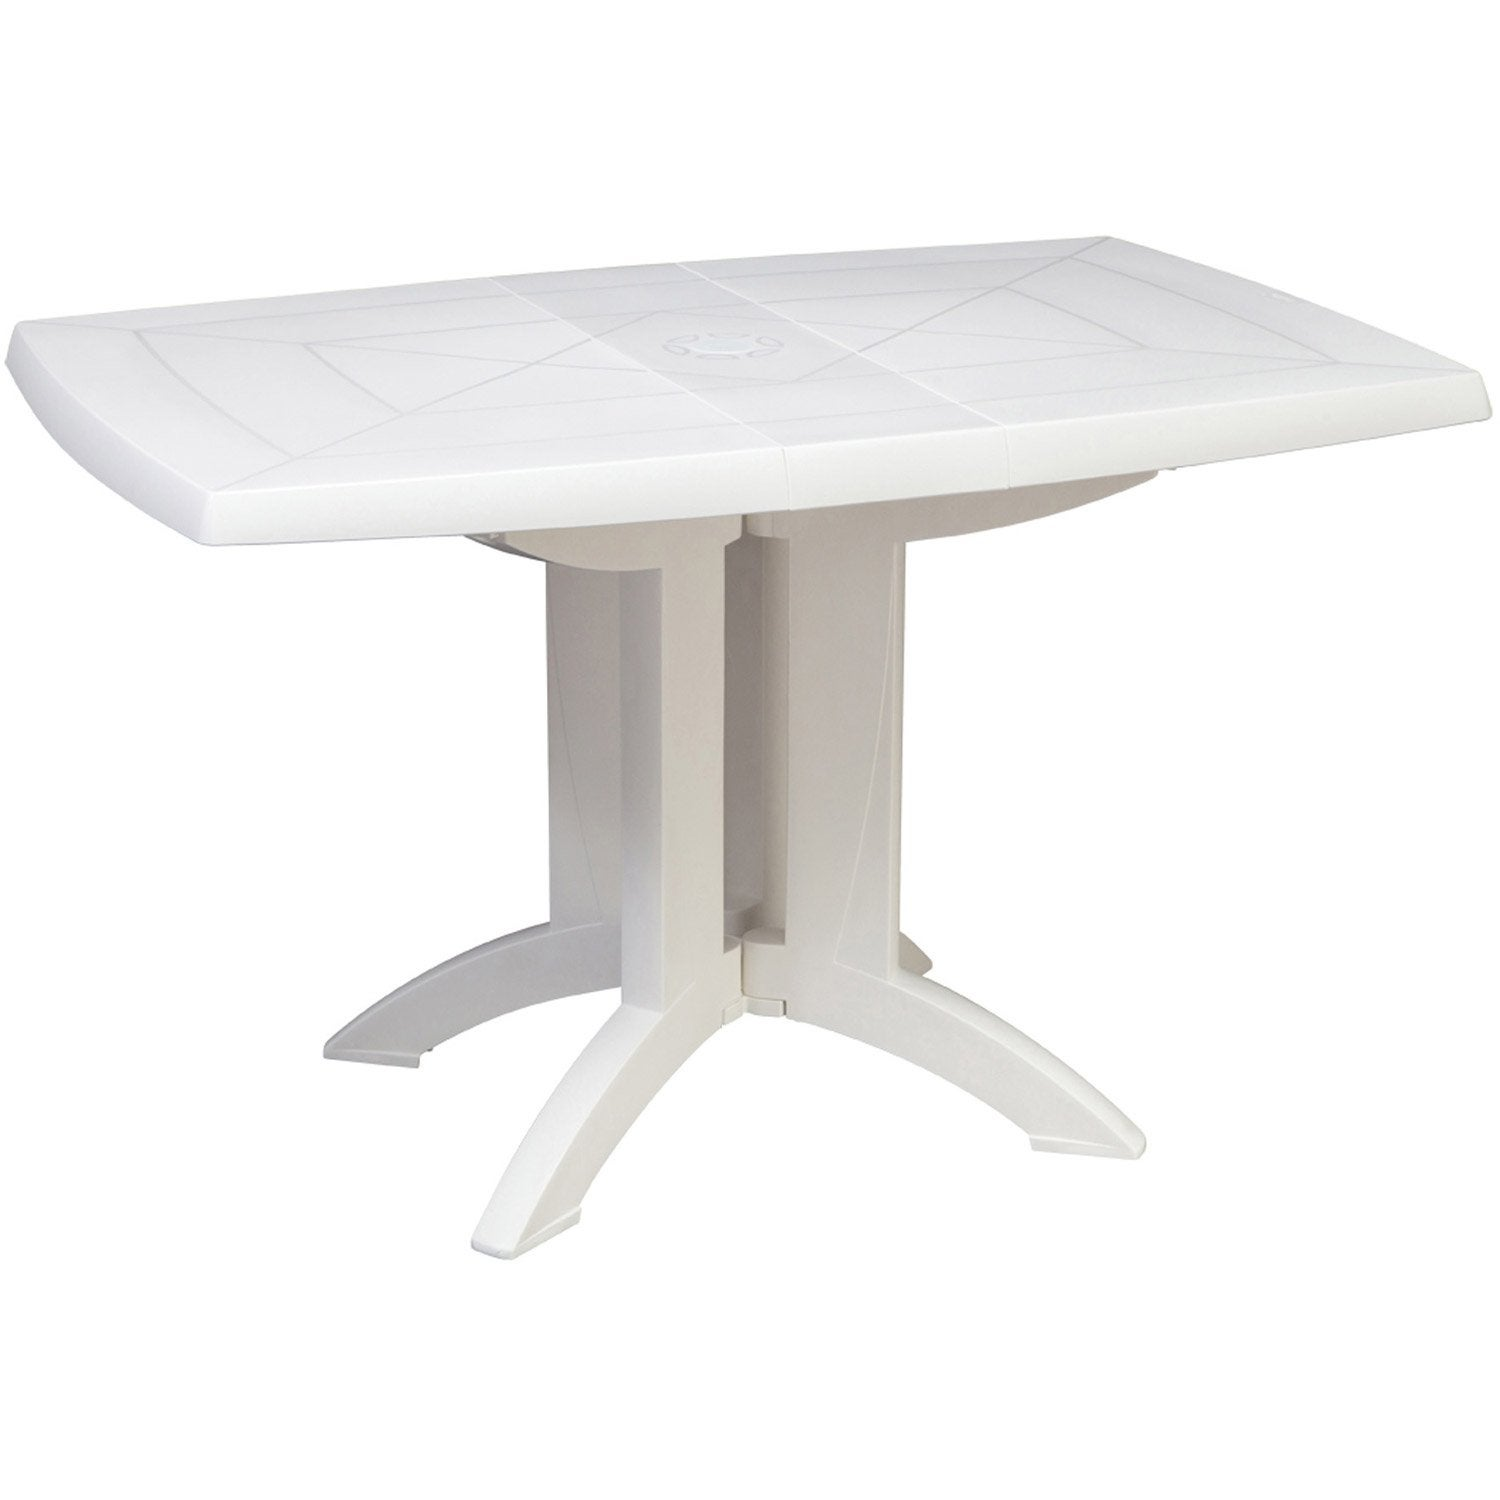 Table de jardin grosfillex v ga rectangulaire blanc 4 - Leroy merlin table pliante ...